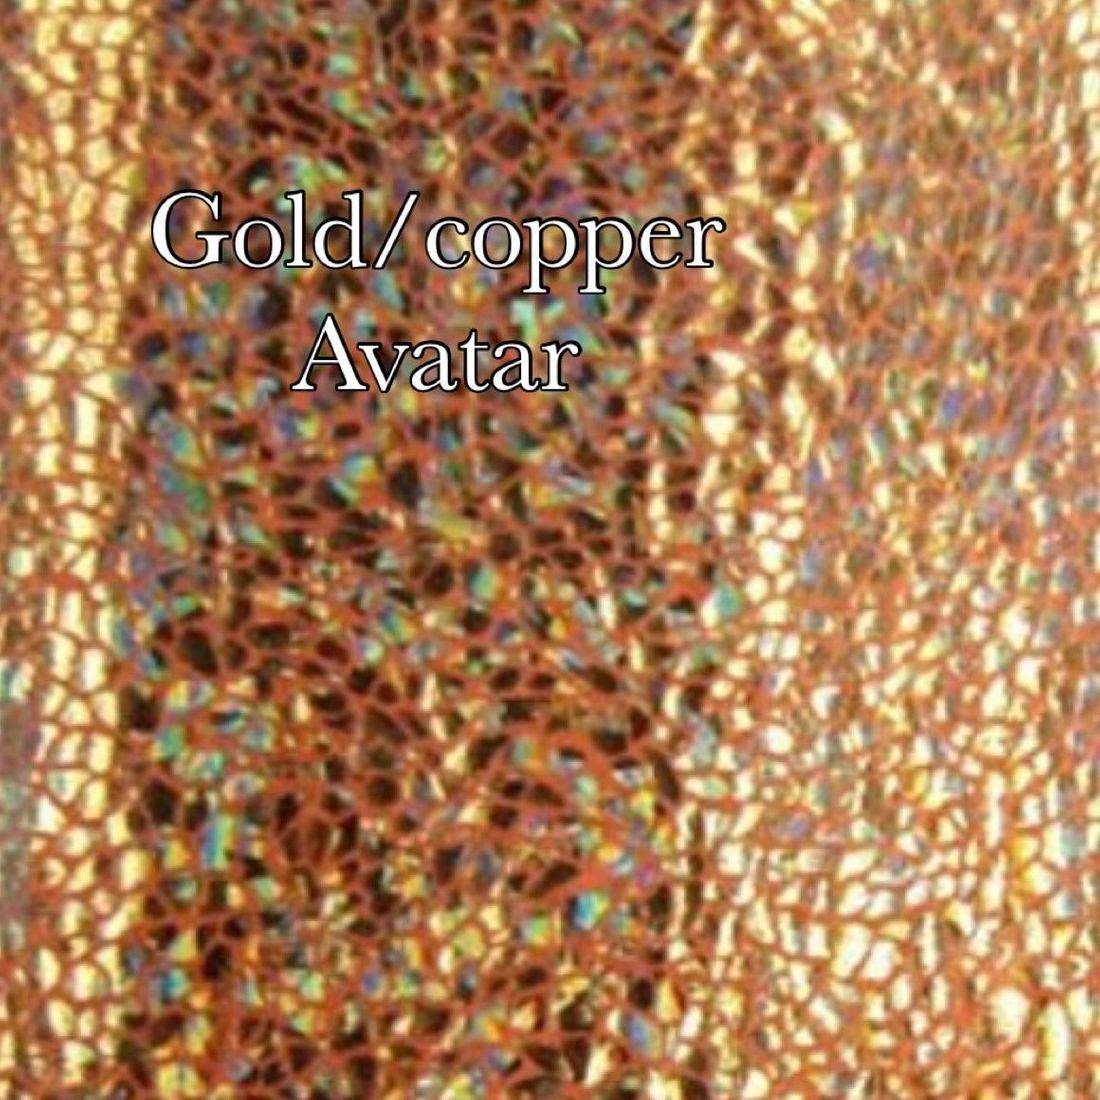 Copper gold avatar